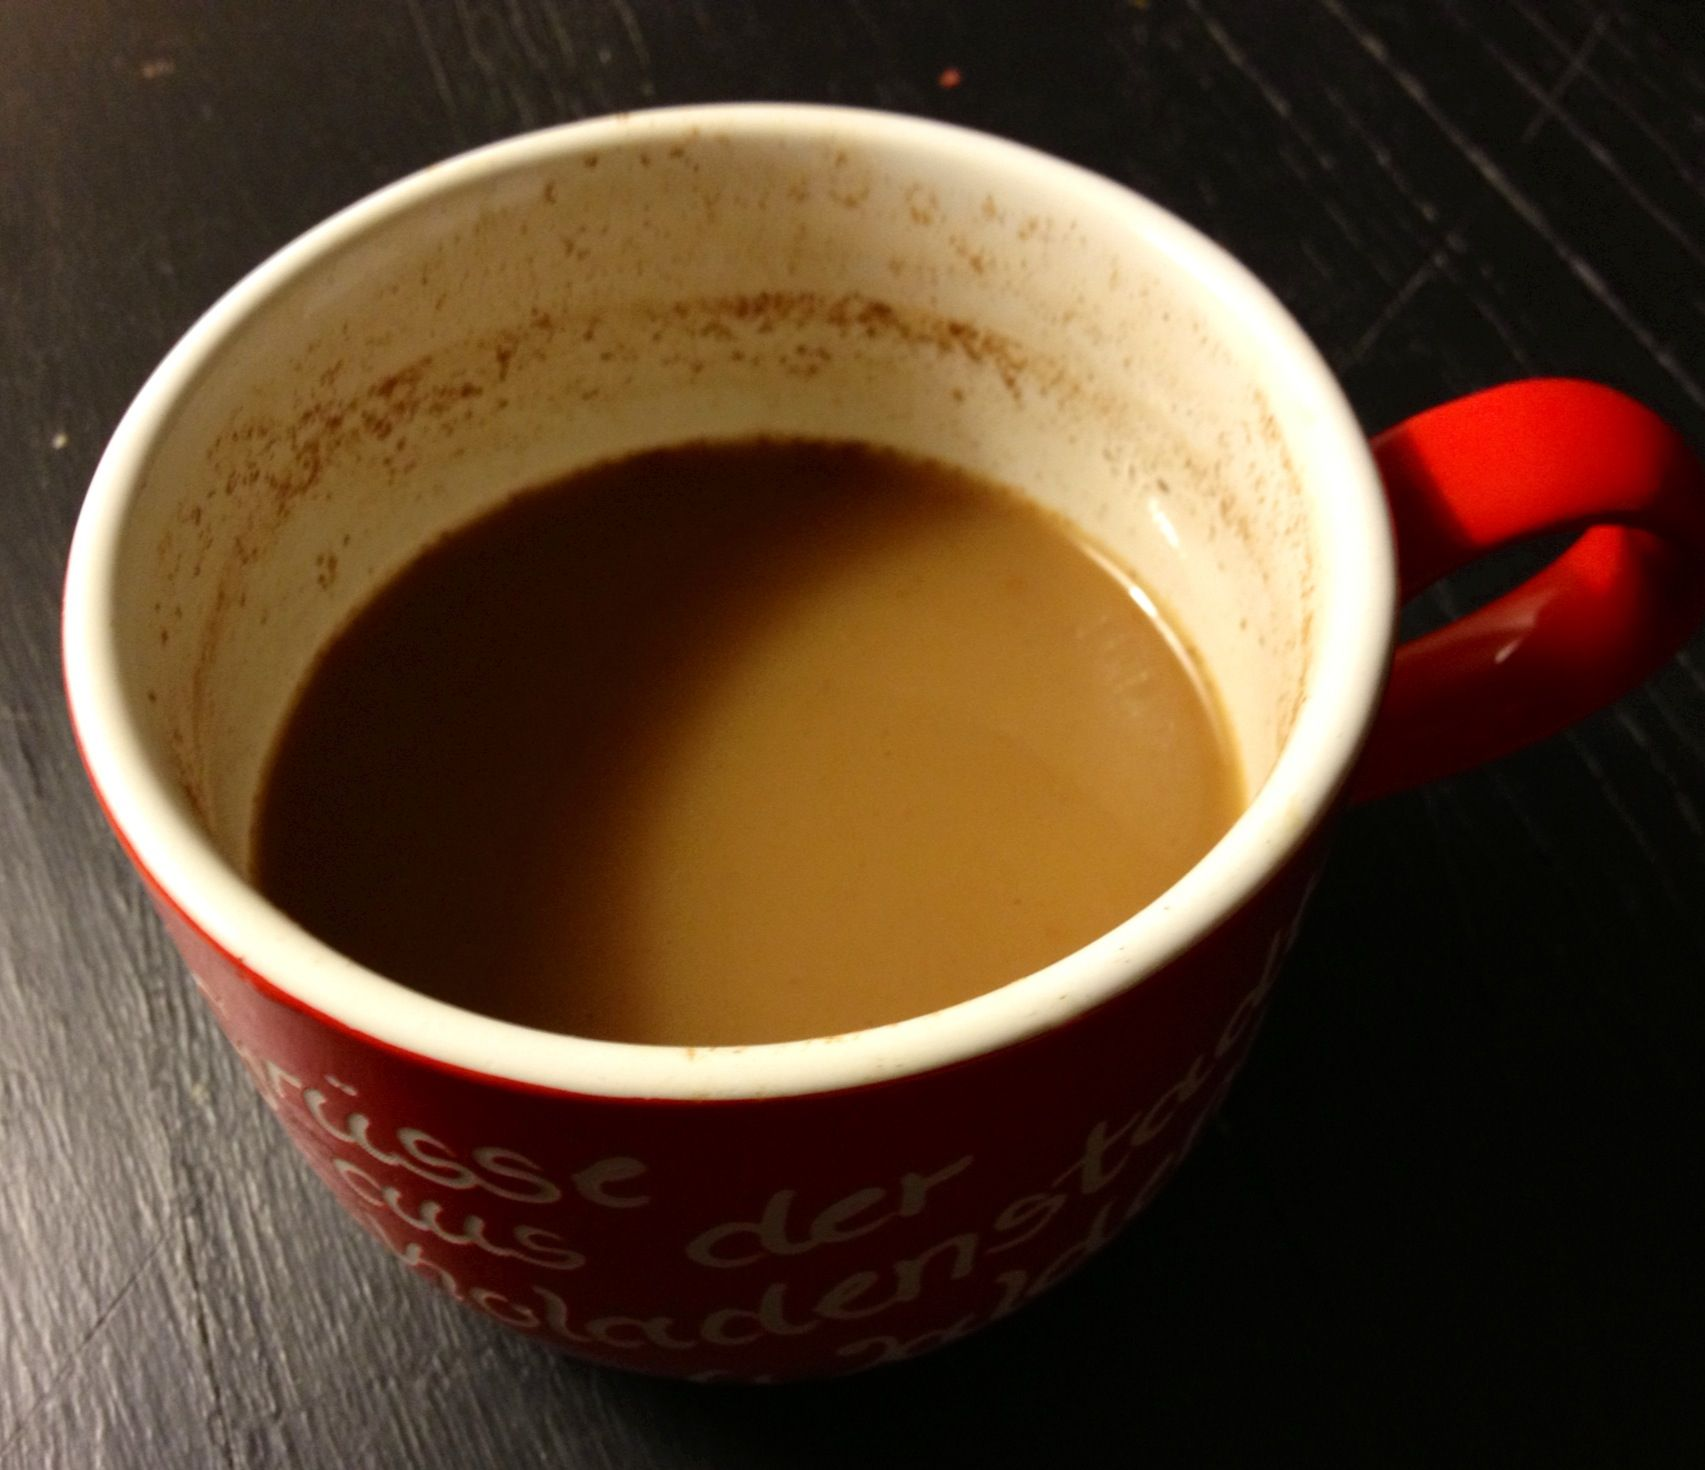 Best Cup Of Coffee Mix 1 4 Teaspoon Of Cinnamon A Pinch